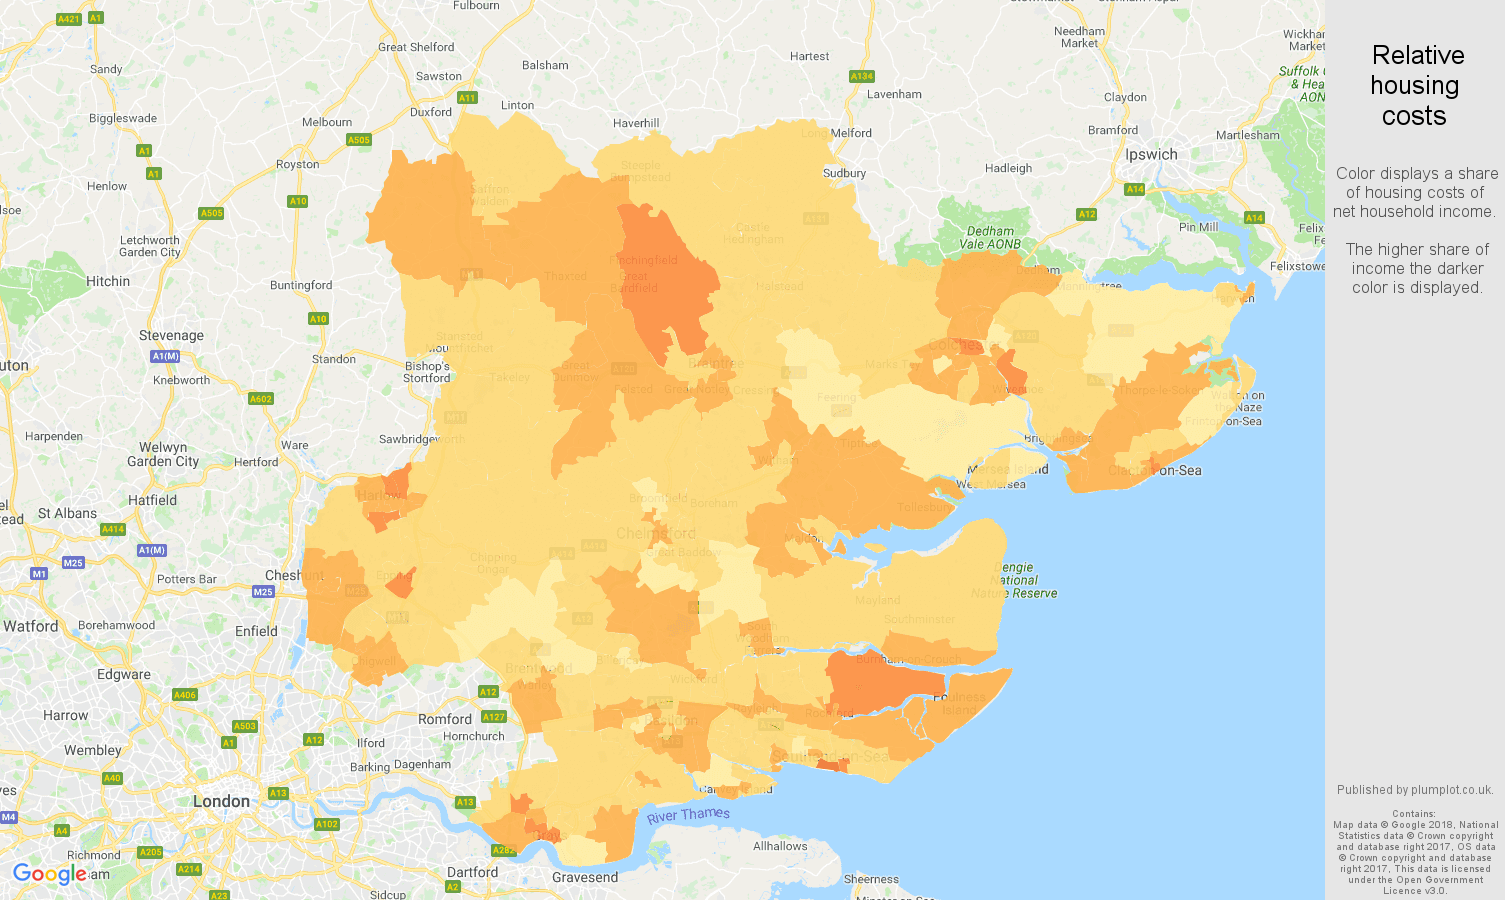 Essex relative housing costs map